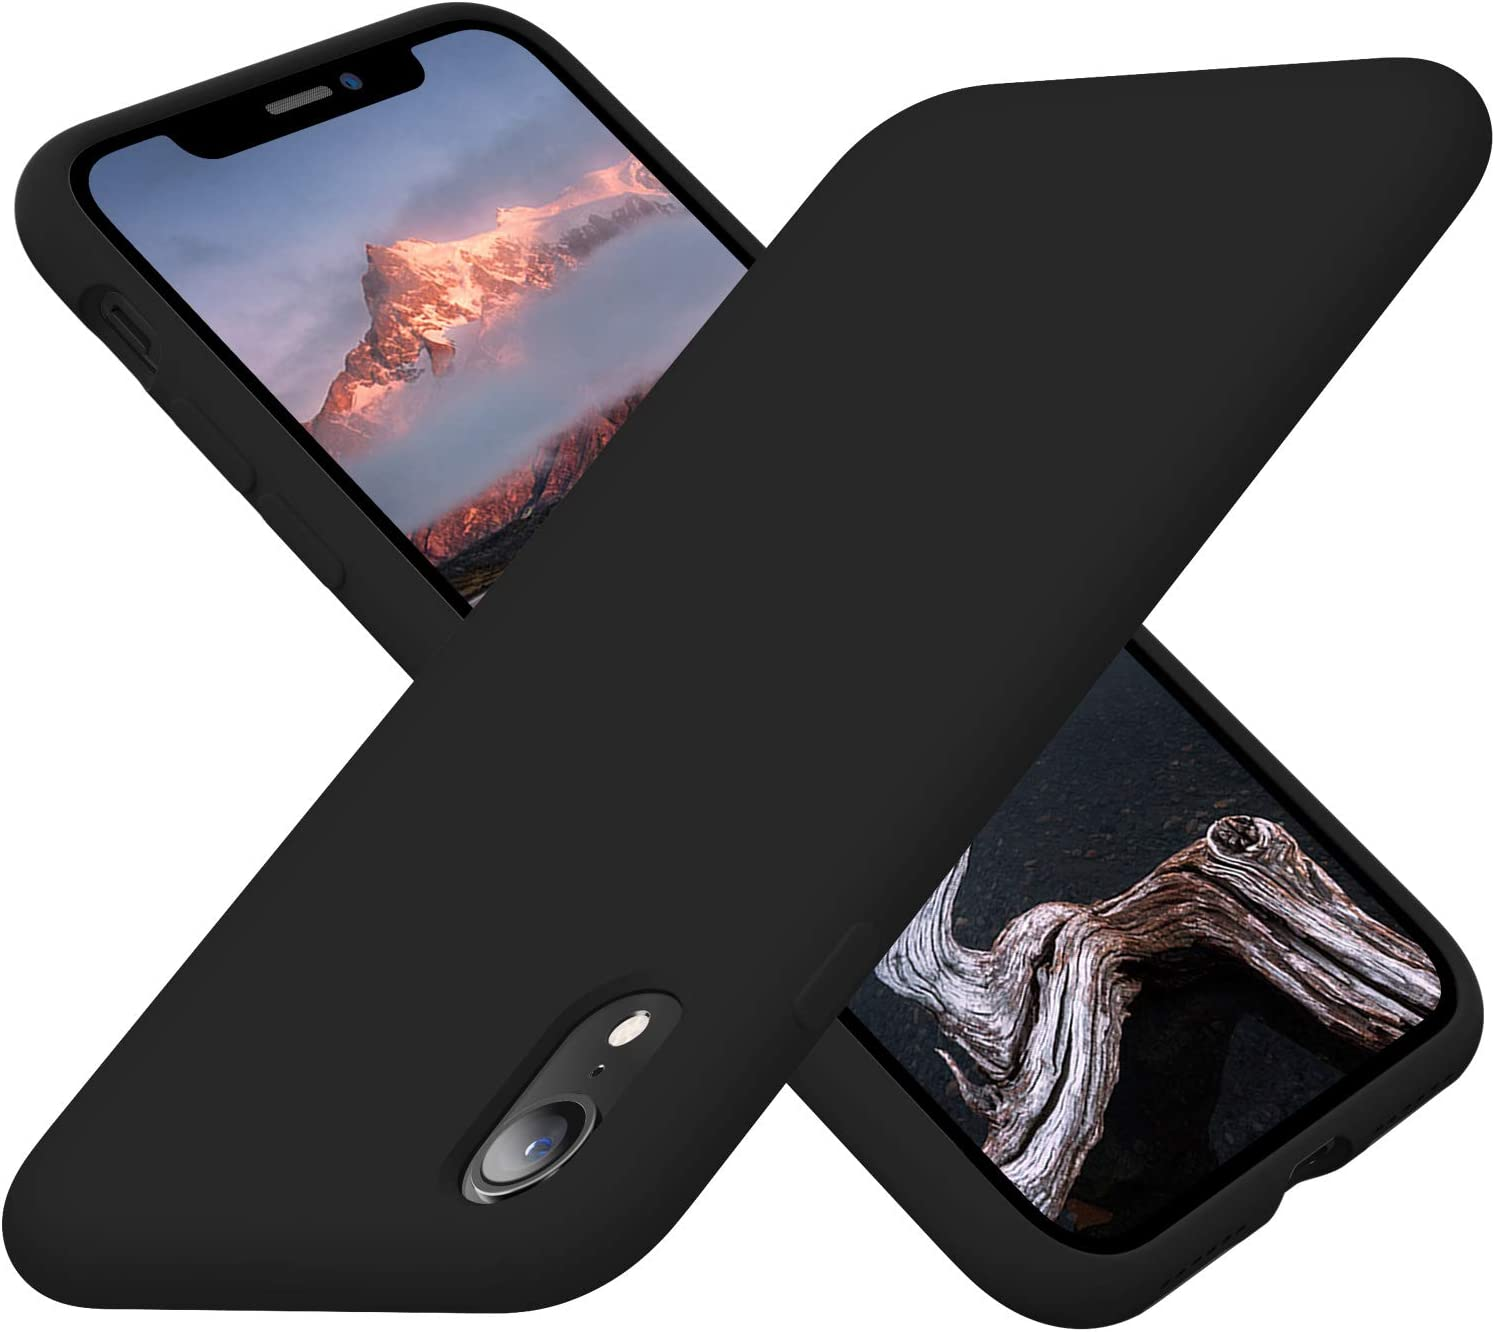 Cordking iPhone XR Case, Silicone Ultra Slim Shockproof Phone Case with [Soft Anti-Scratch Microfiber Lining], 6.1 inch, Black